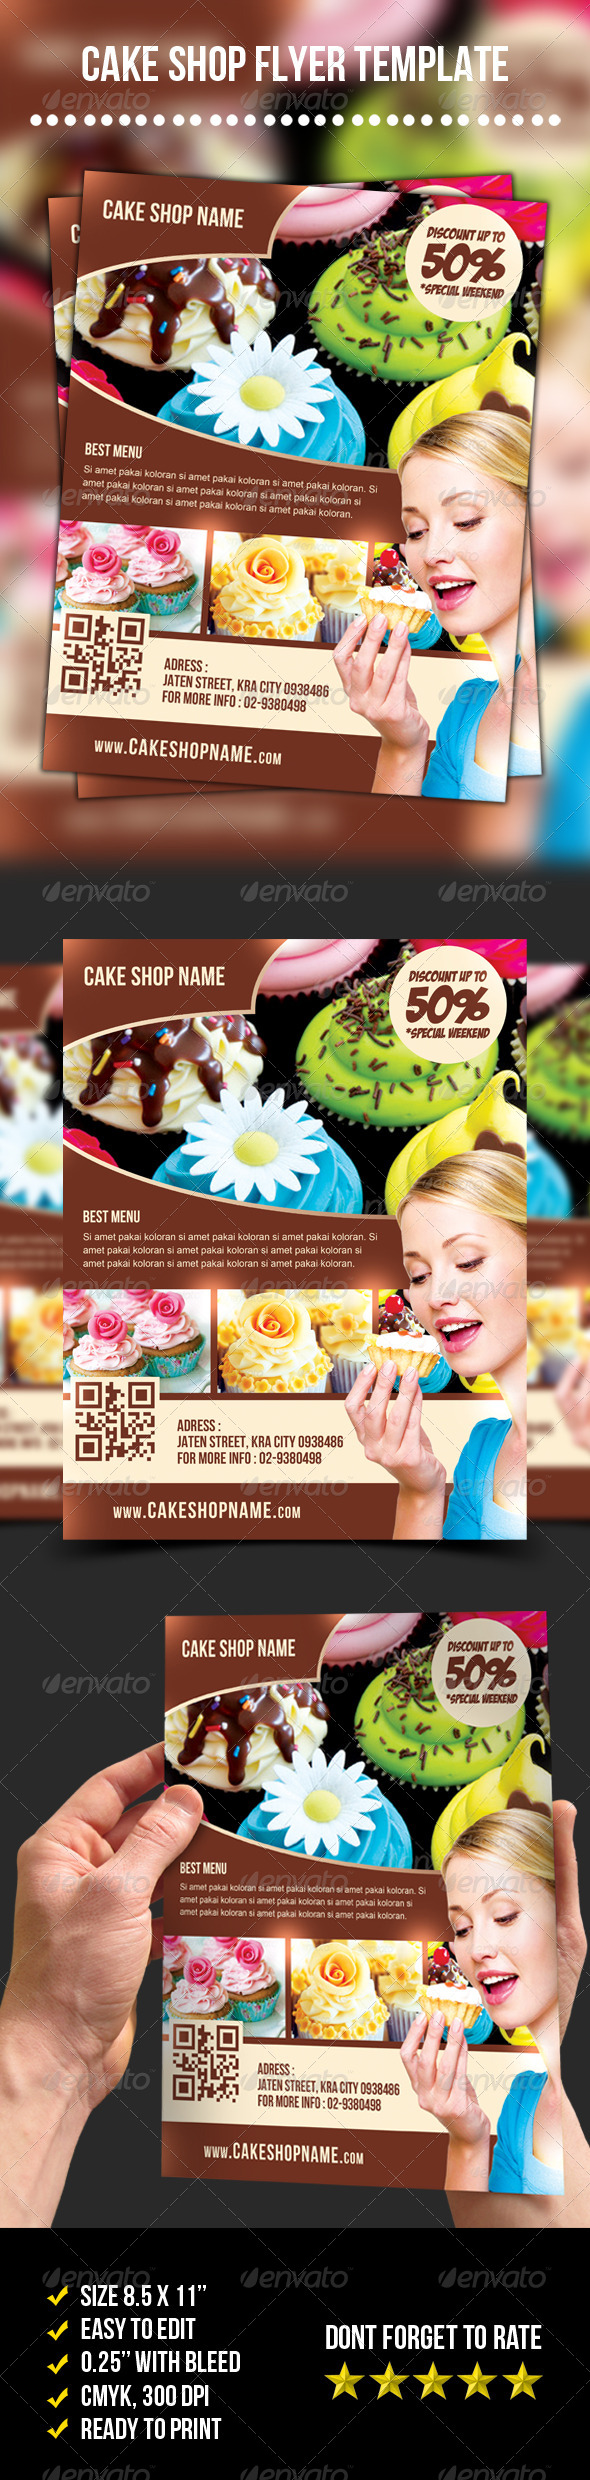 Cake Shop Flyer - Restaurant Flyers